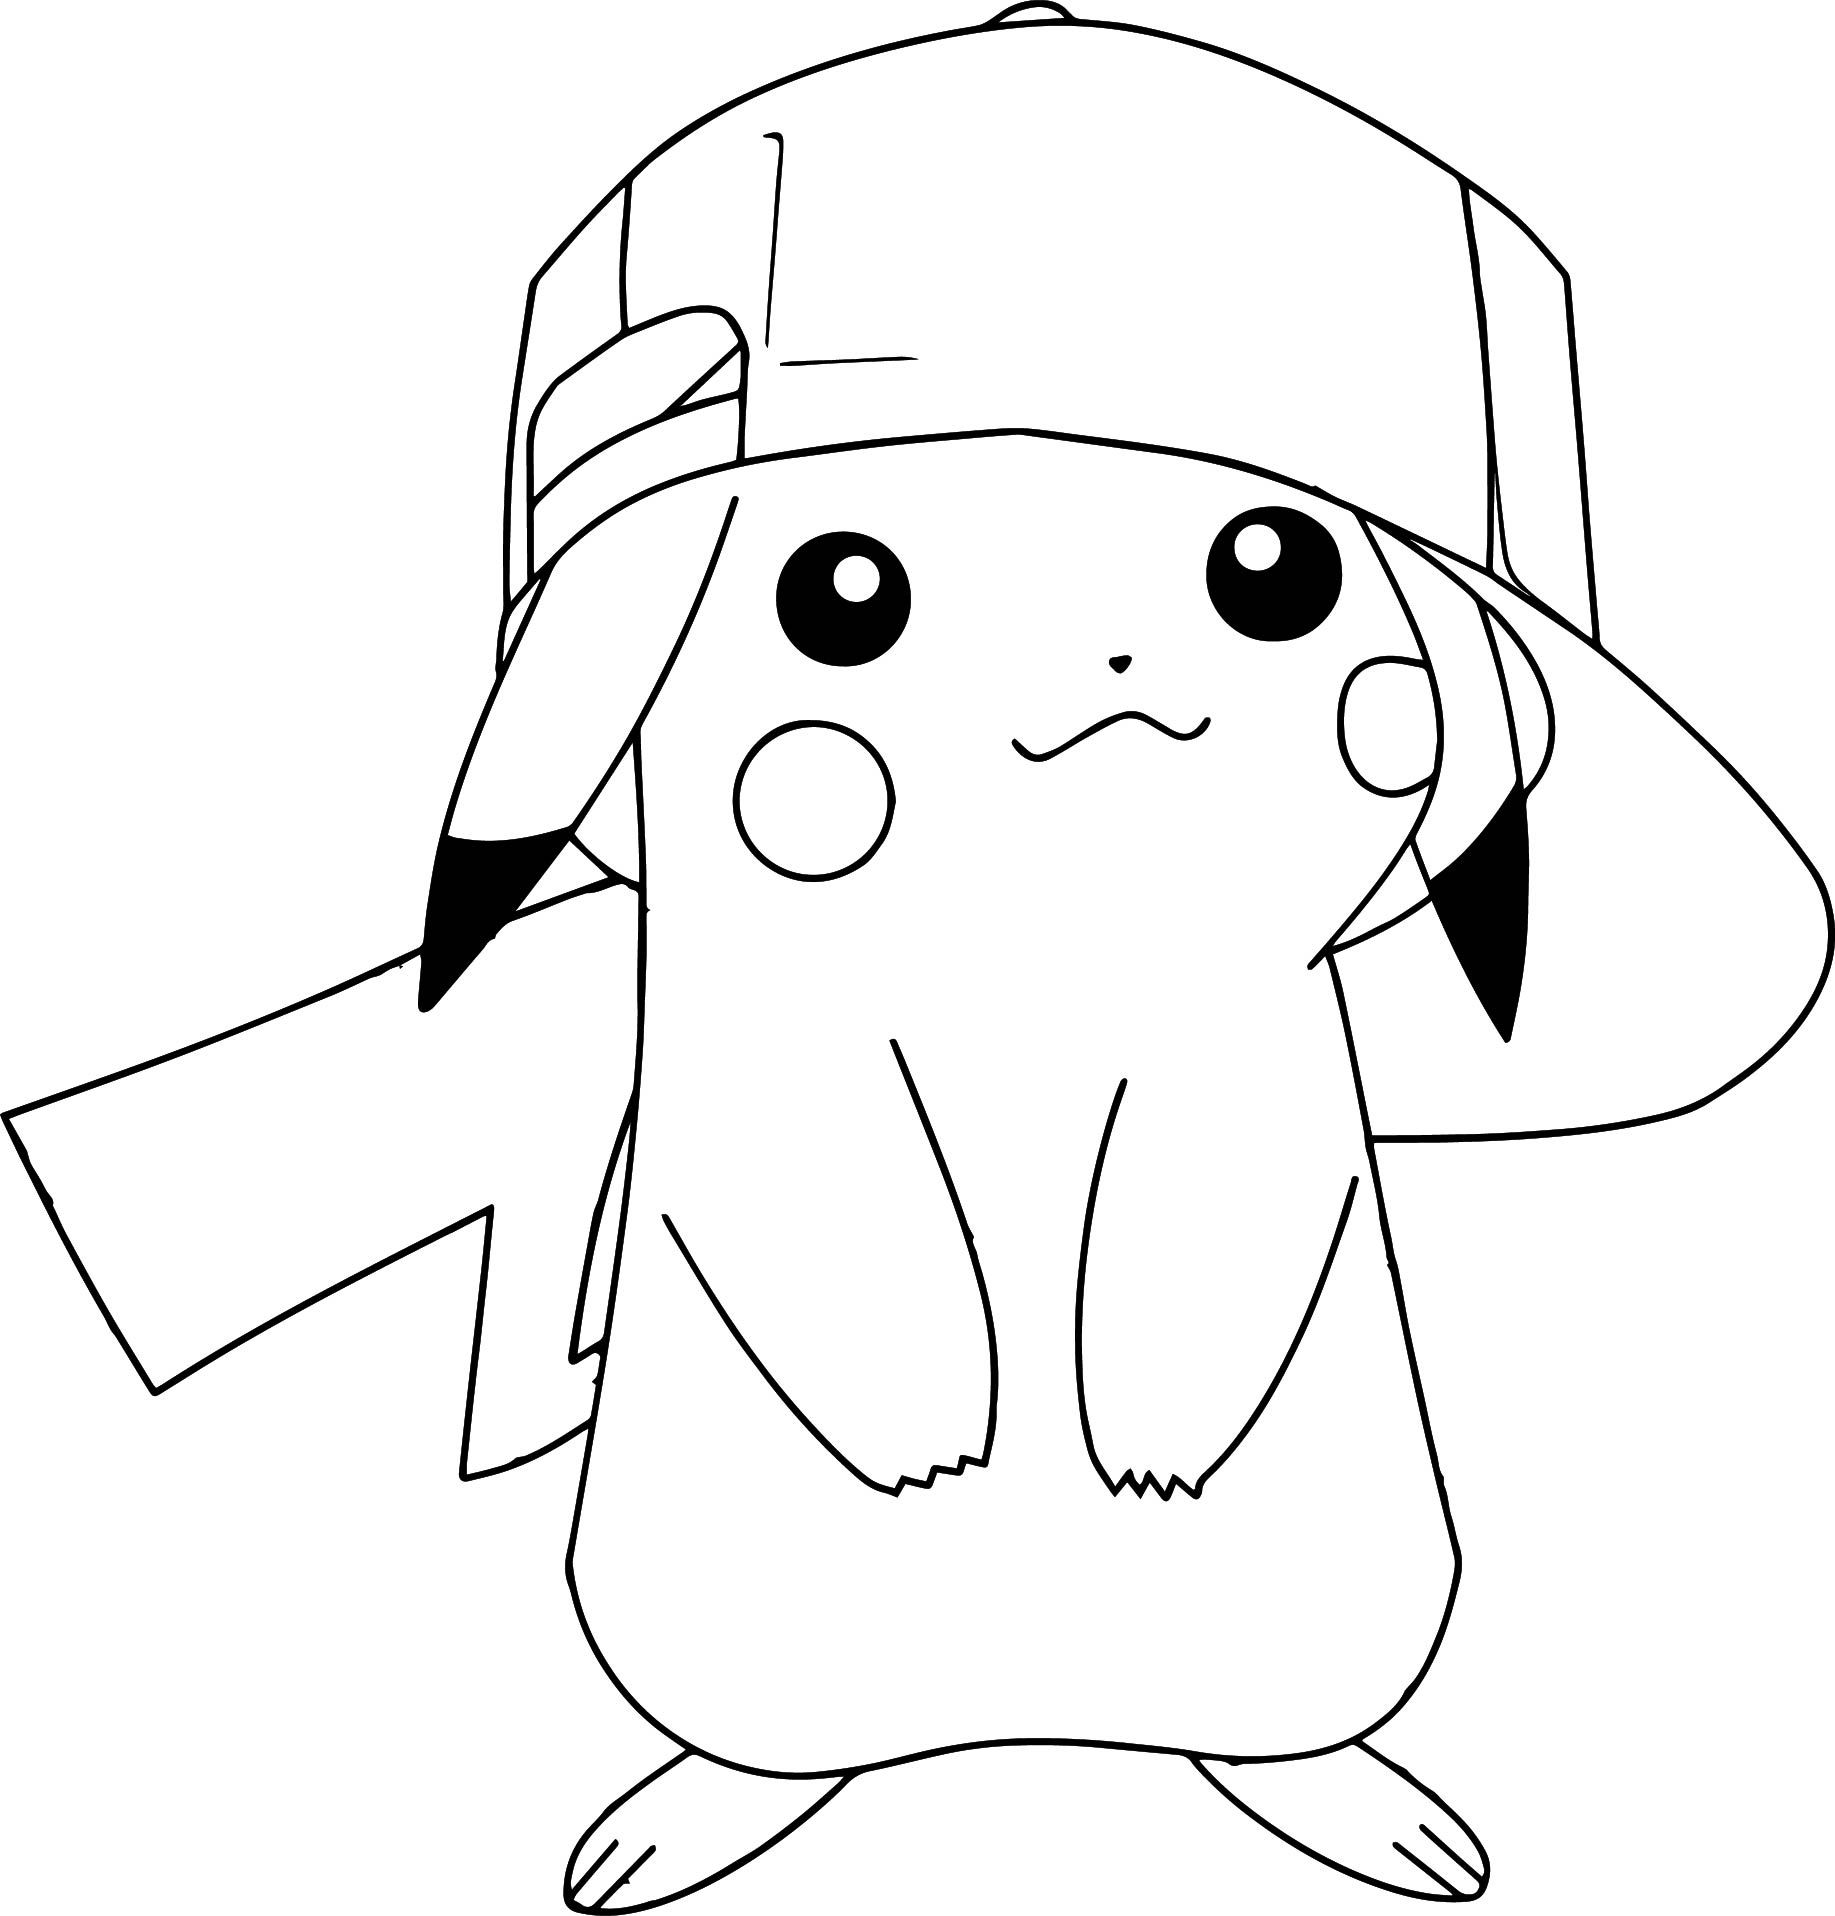 Coloring games of pokemon - Perfect Pokemon Coloring Pages